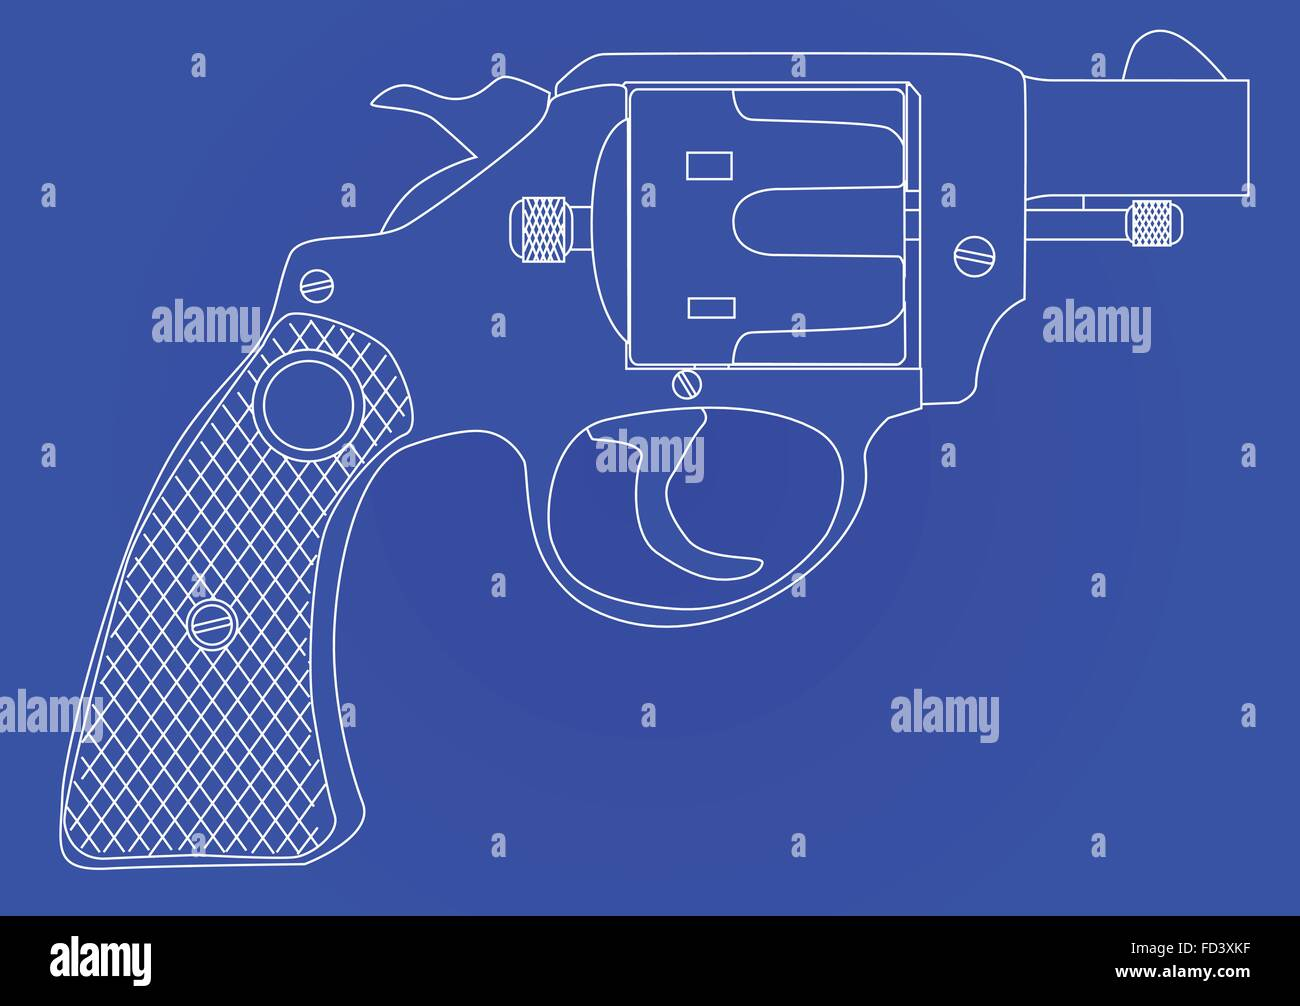 A snub nose handgun as used by police forces as a blueprint stock a snub nose handgun as used by police forces as a blueprint malvernweather Choice Image